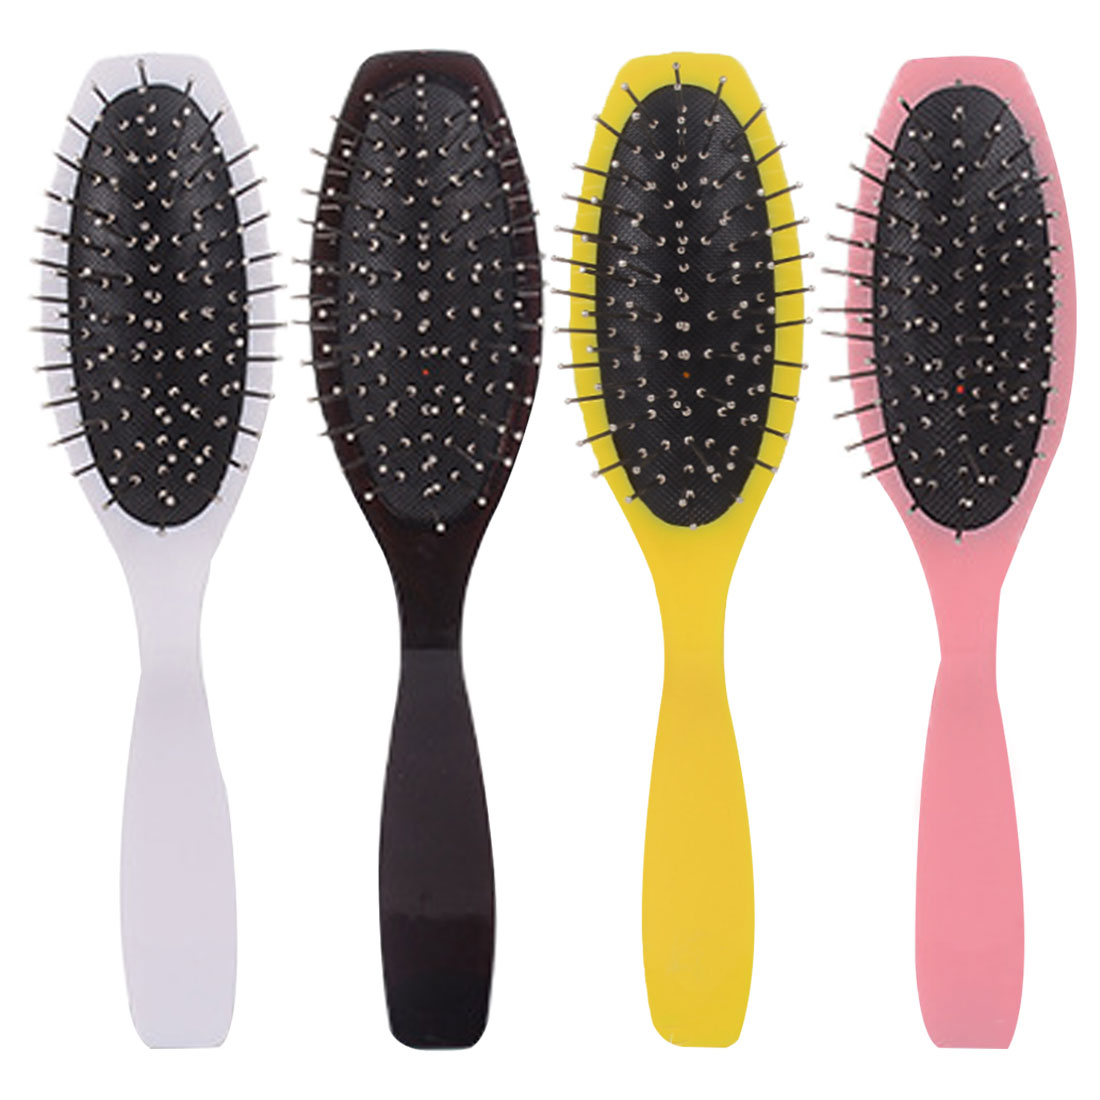 Wig Hair Care Anti-static Hair Detangles Massage Comb Hairs Brush Beard Comb Salon Barber Home Beauty Hairdressing Styling Tools